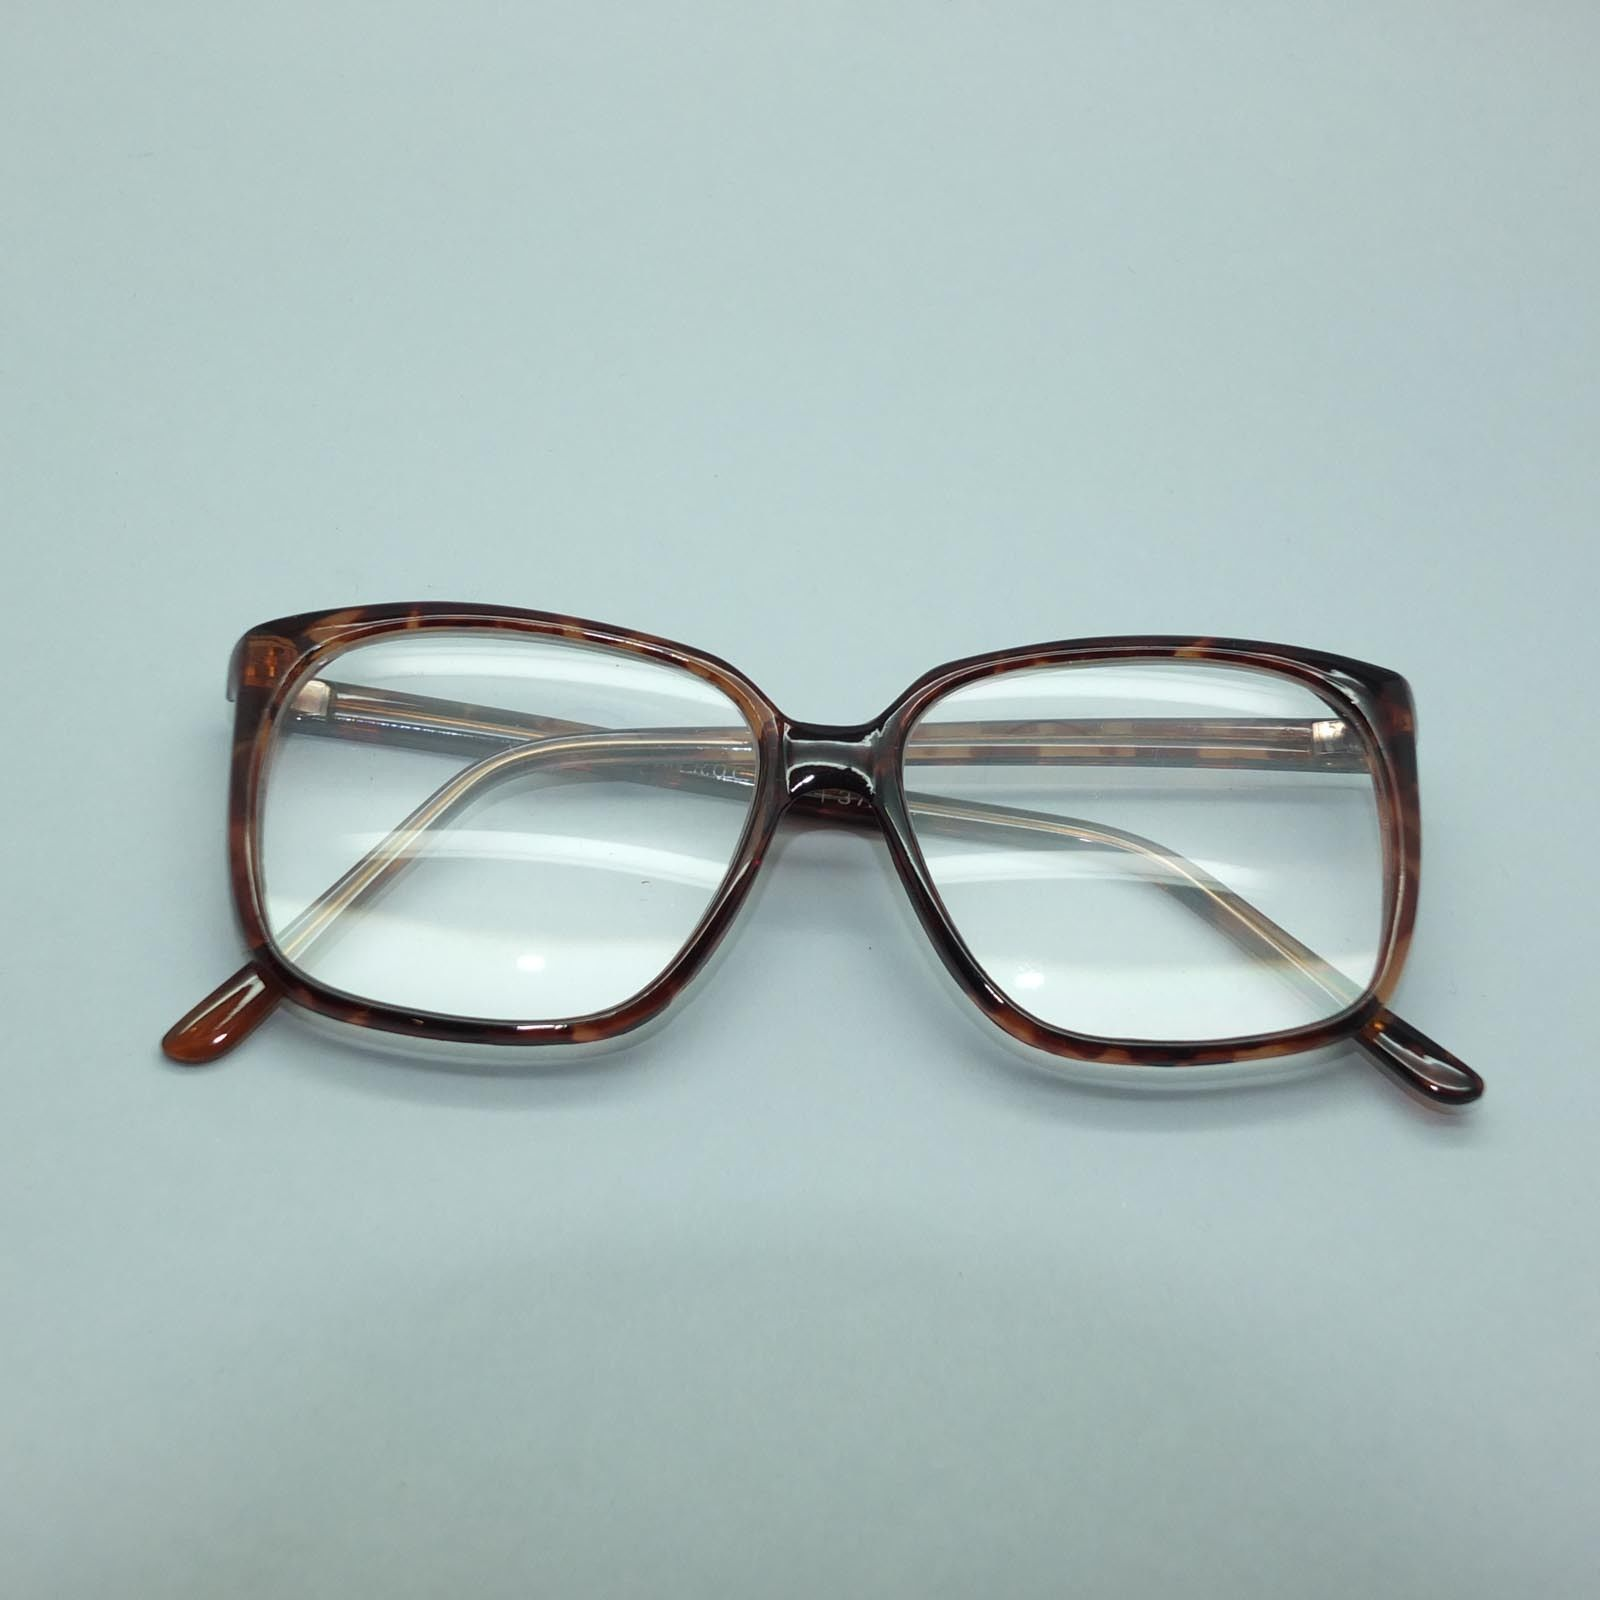 3eac36ecf5 Oversize Square Large Tortoise Frame Reading Glasses +3.75 Lens Strength